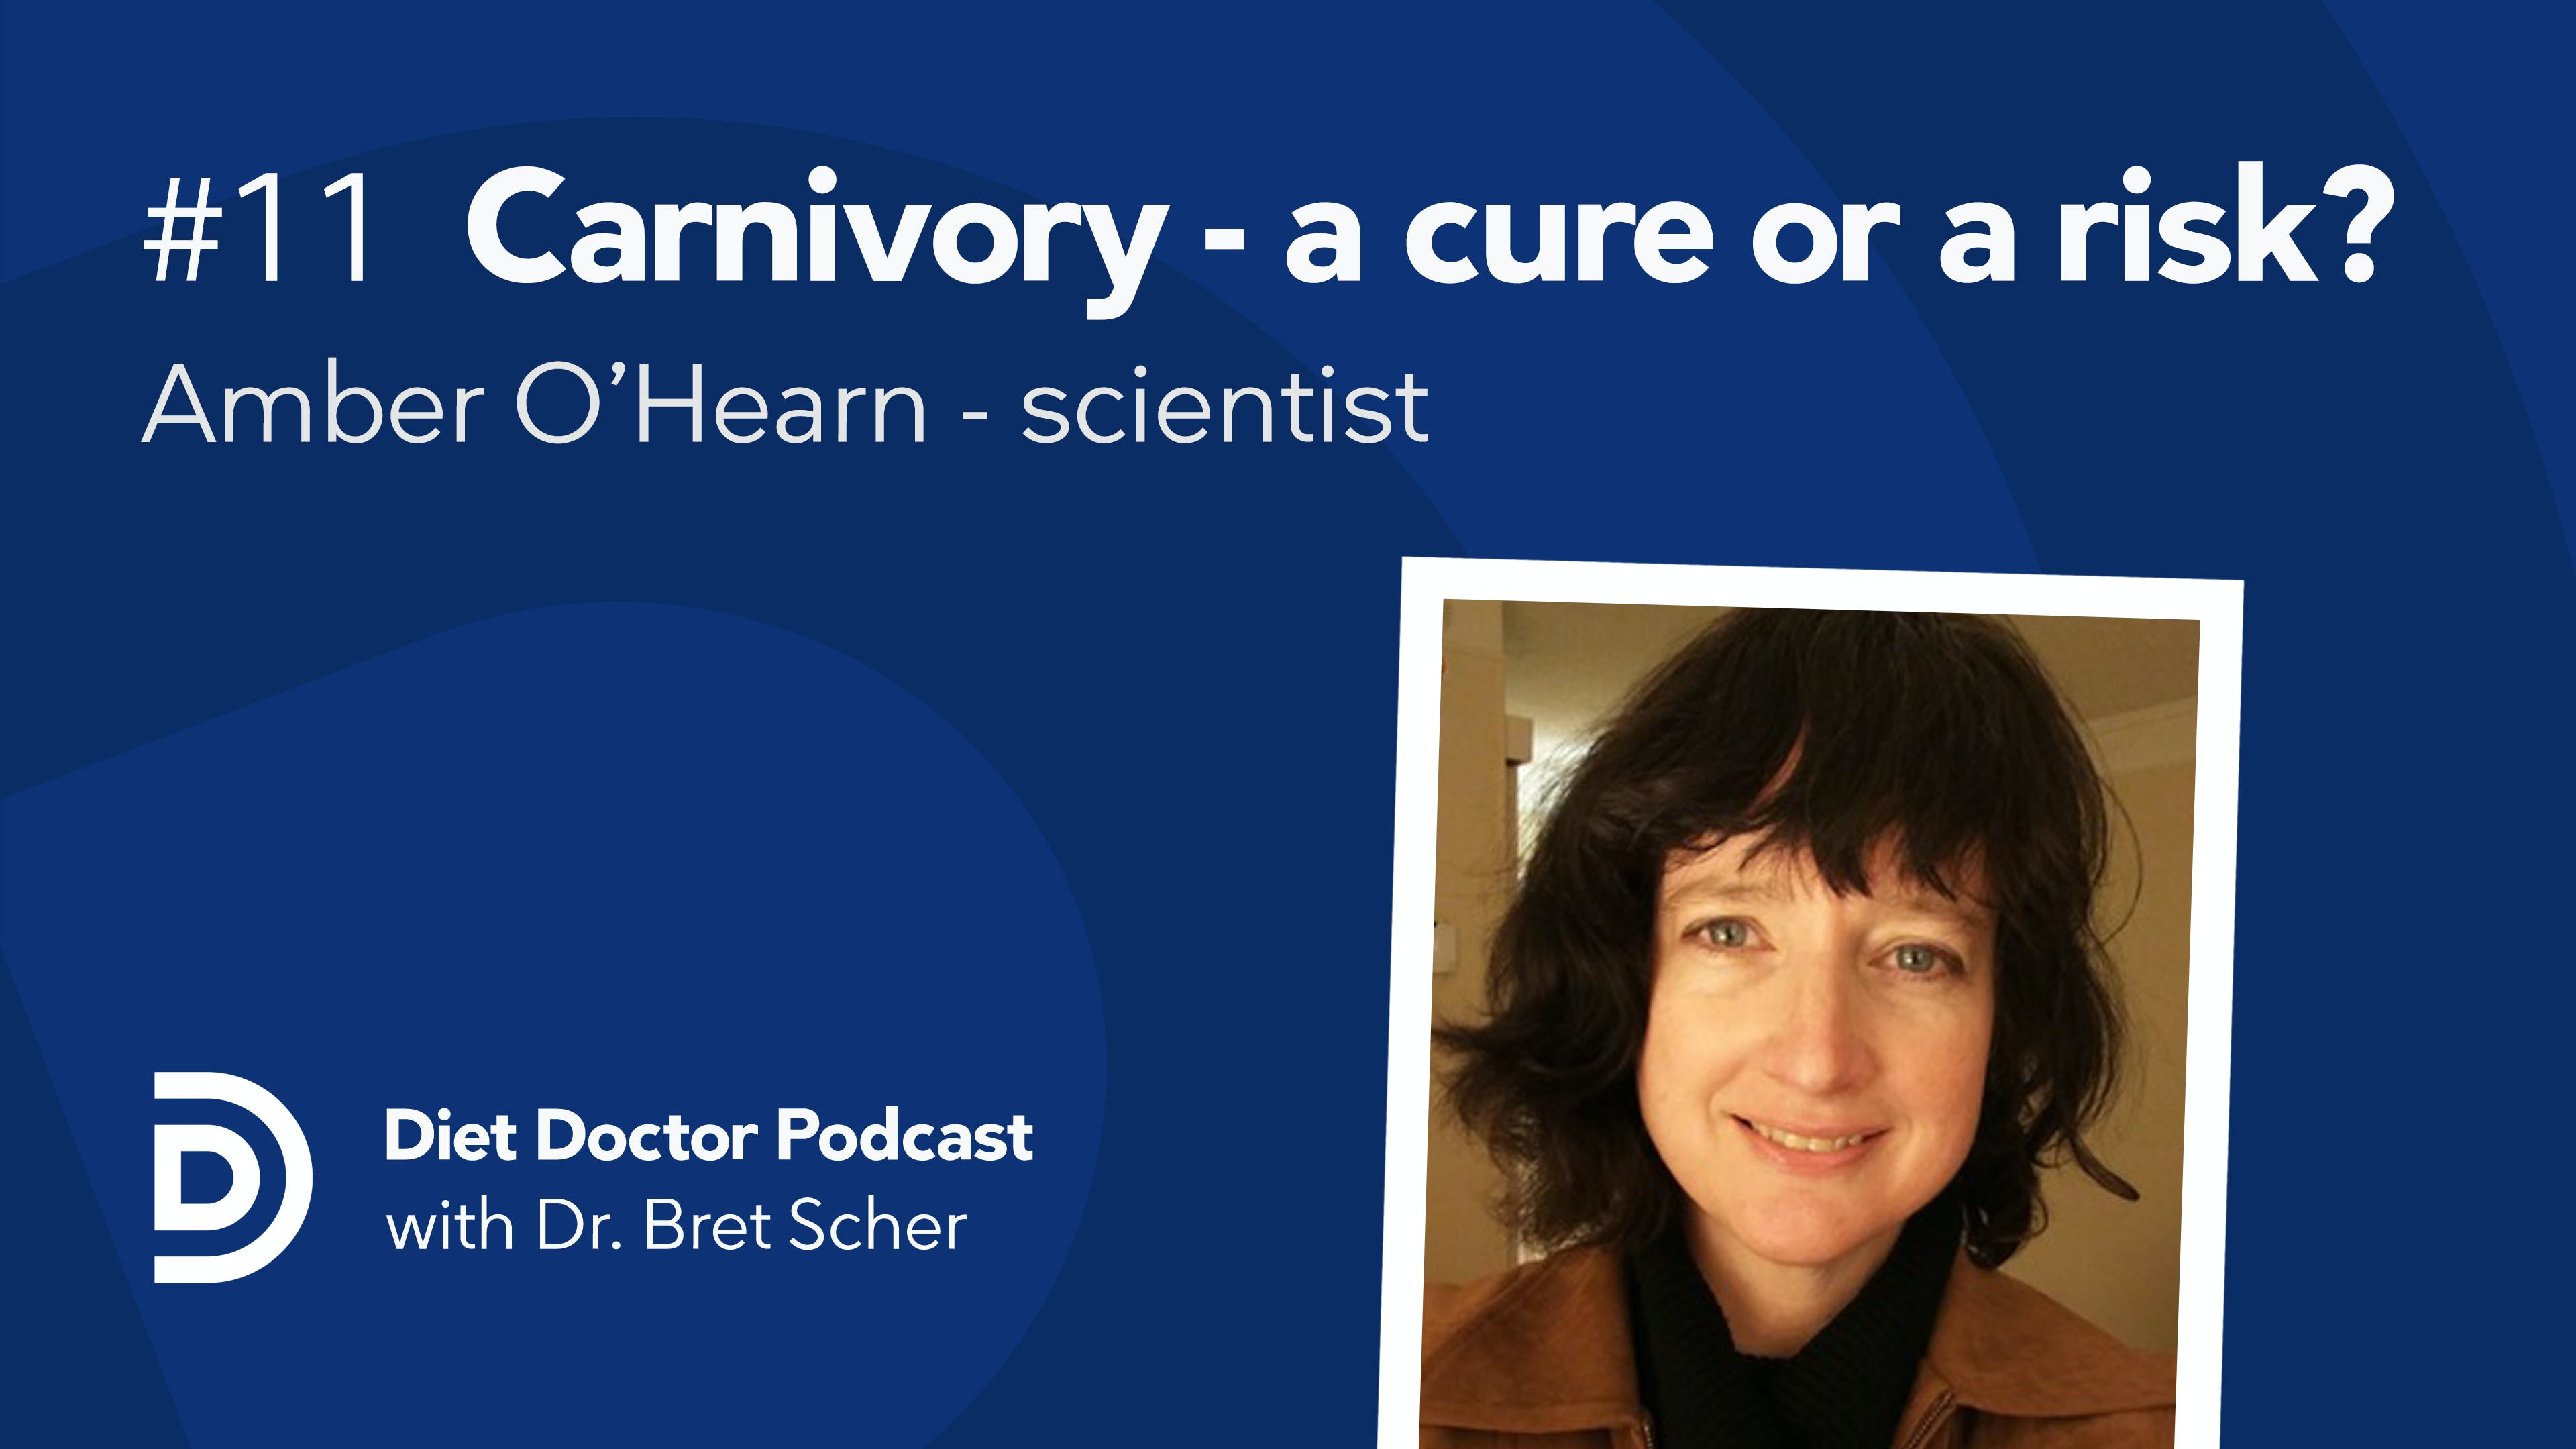 Diet Doctor Podcast #11 –  Amber O'Hearn